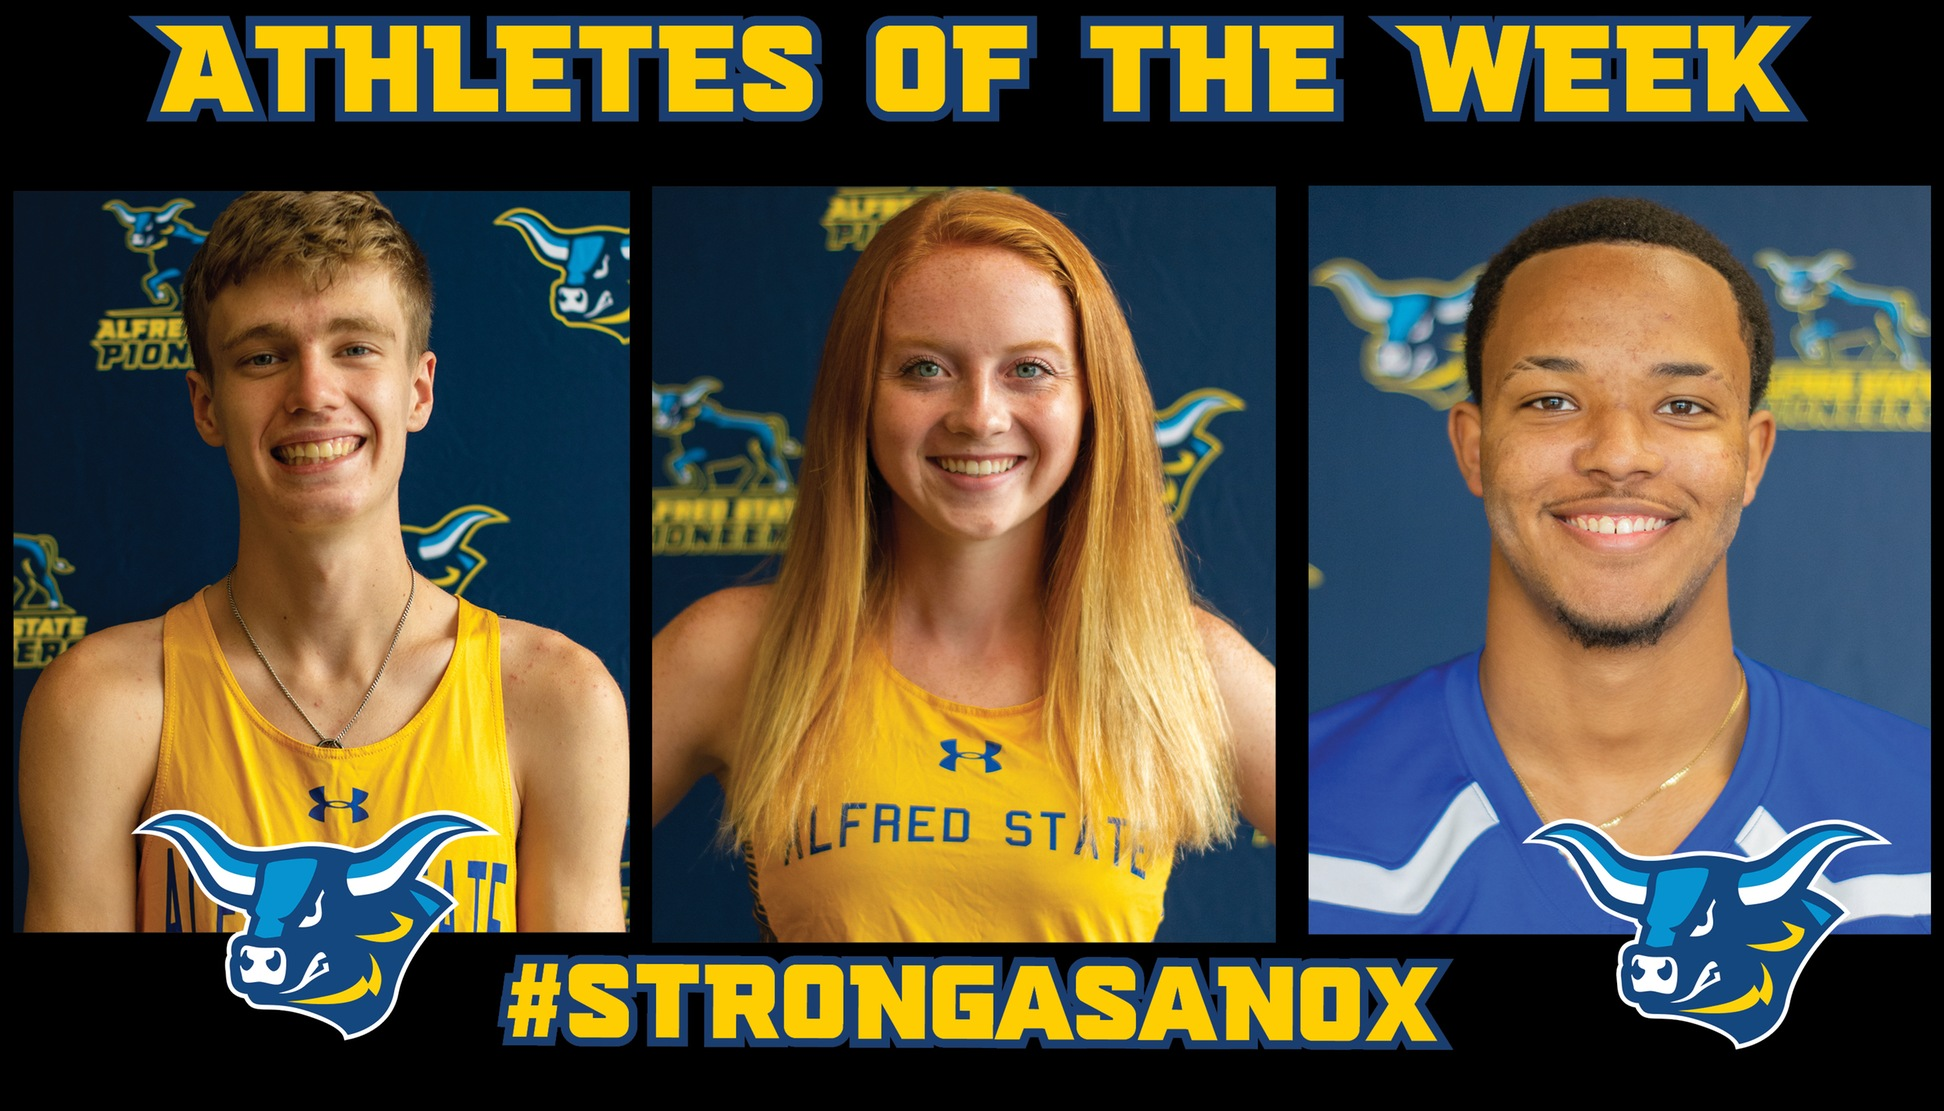 Athletes of the Week for November 4th - Gavin Bathgate, Caitlyn Caltagirone, and Dashown Wilson